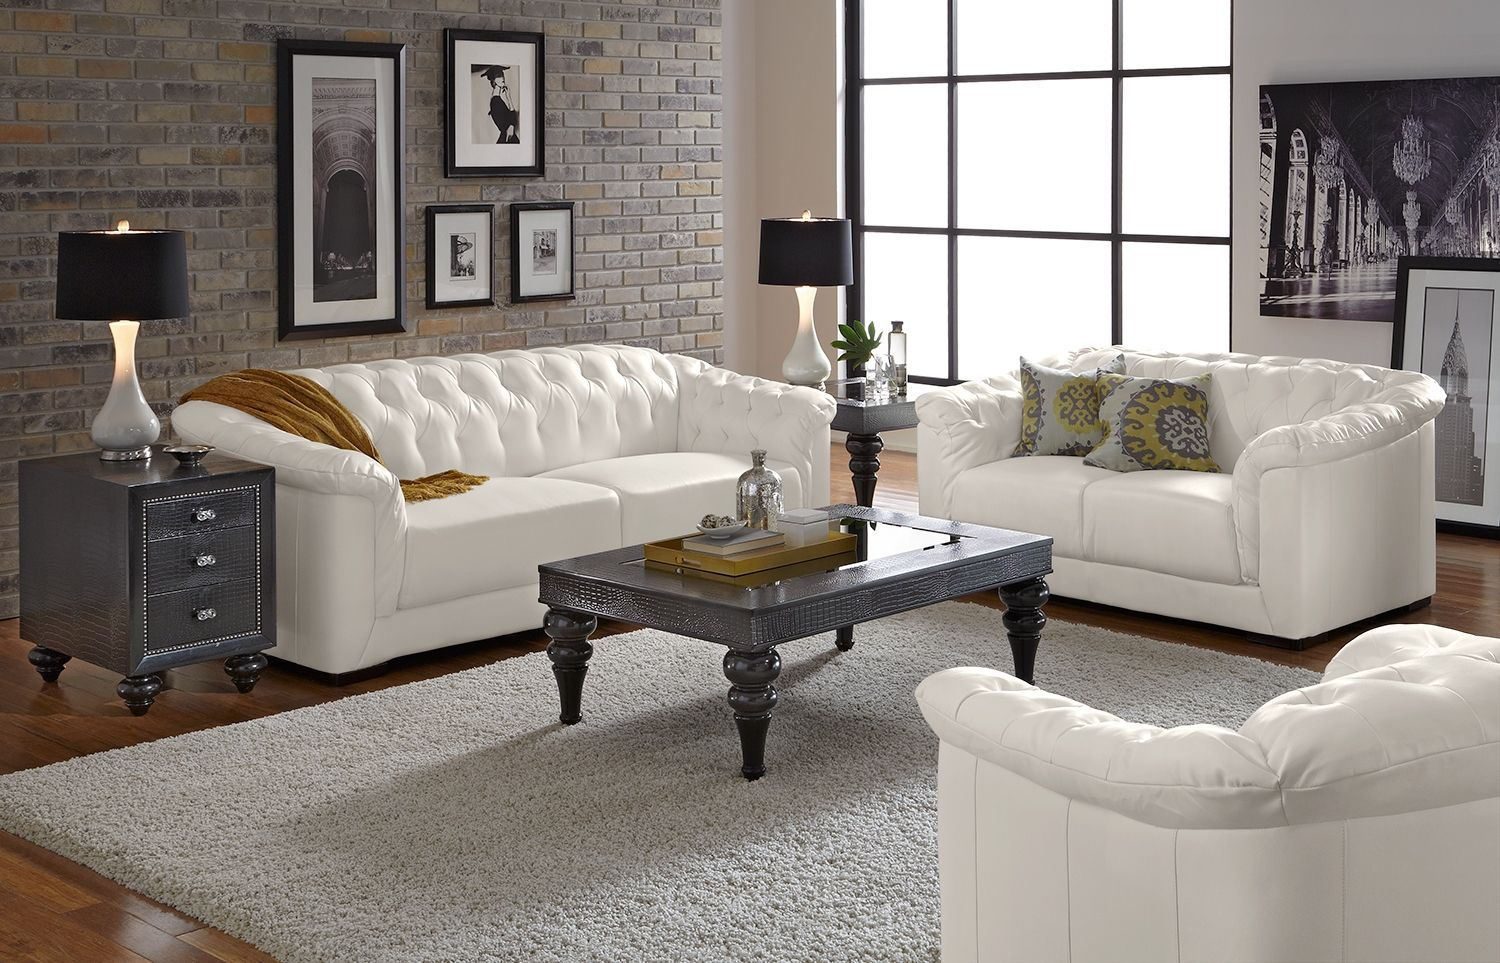 Awasome Tufted Leather Sofa Leather Sofa Living Room Living Room Leather White Leather Sofas